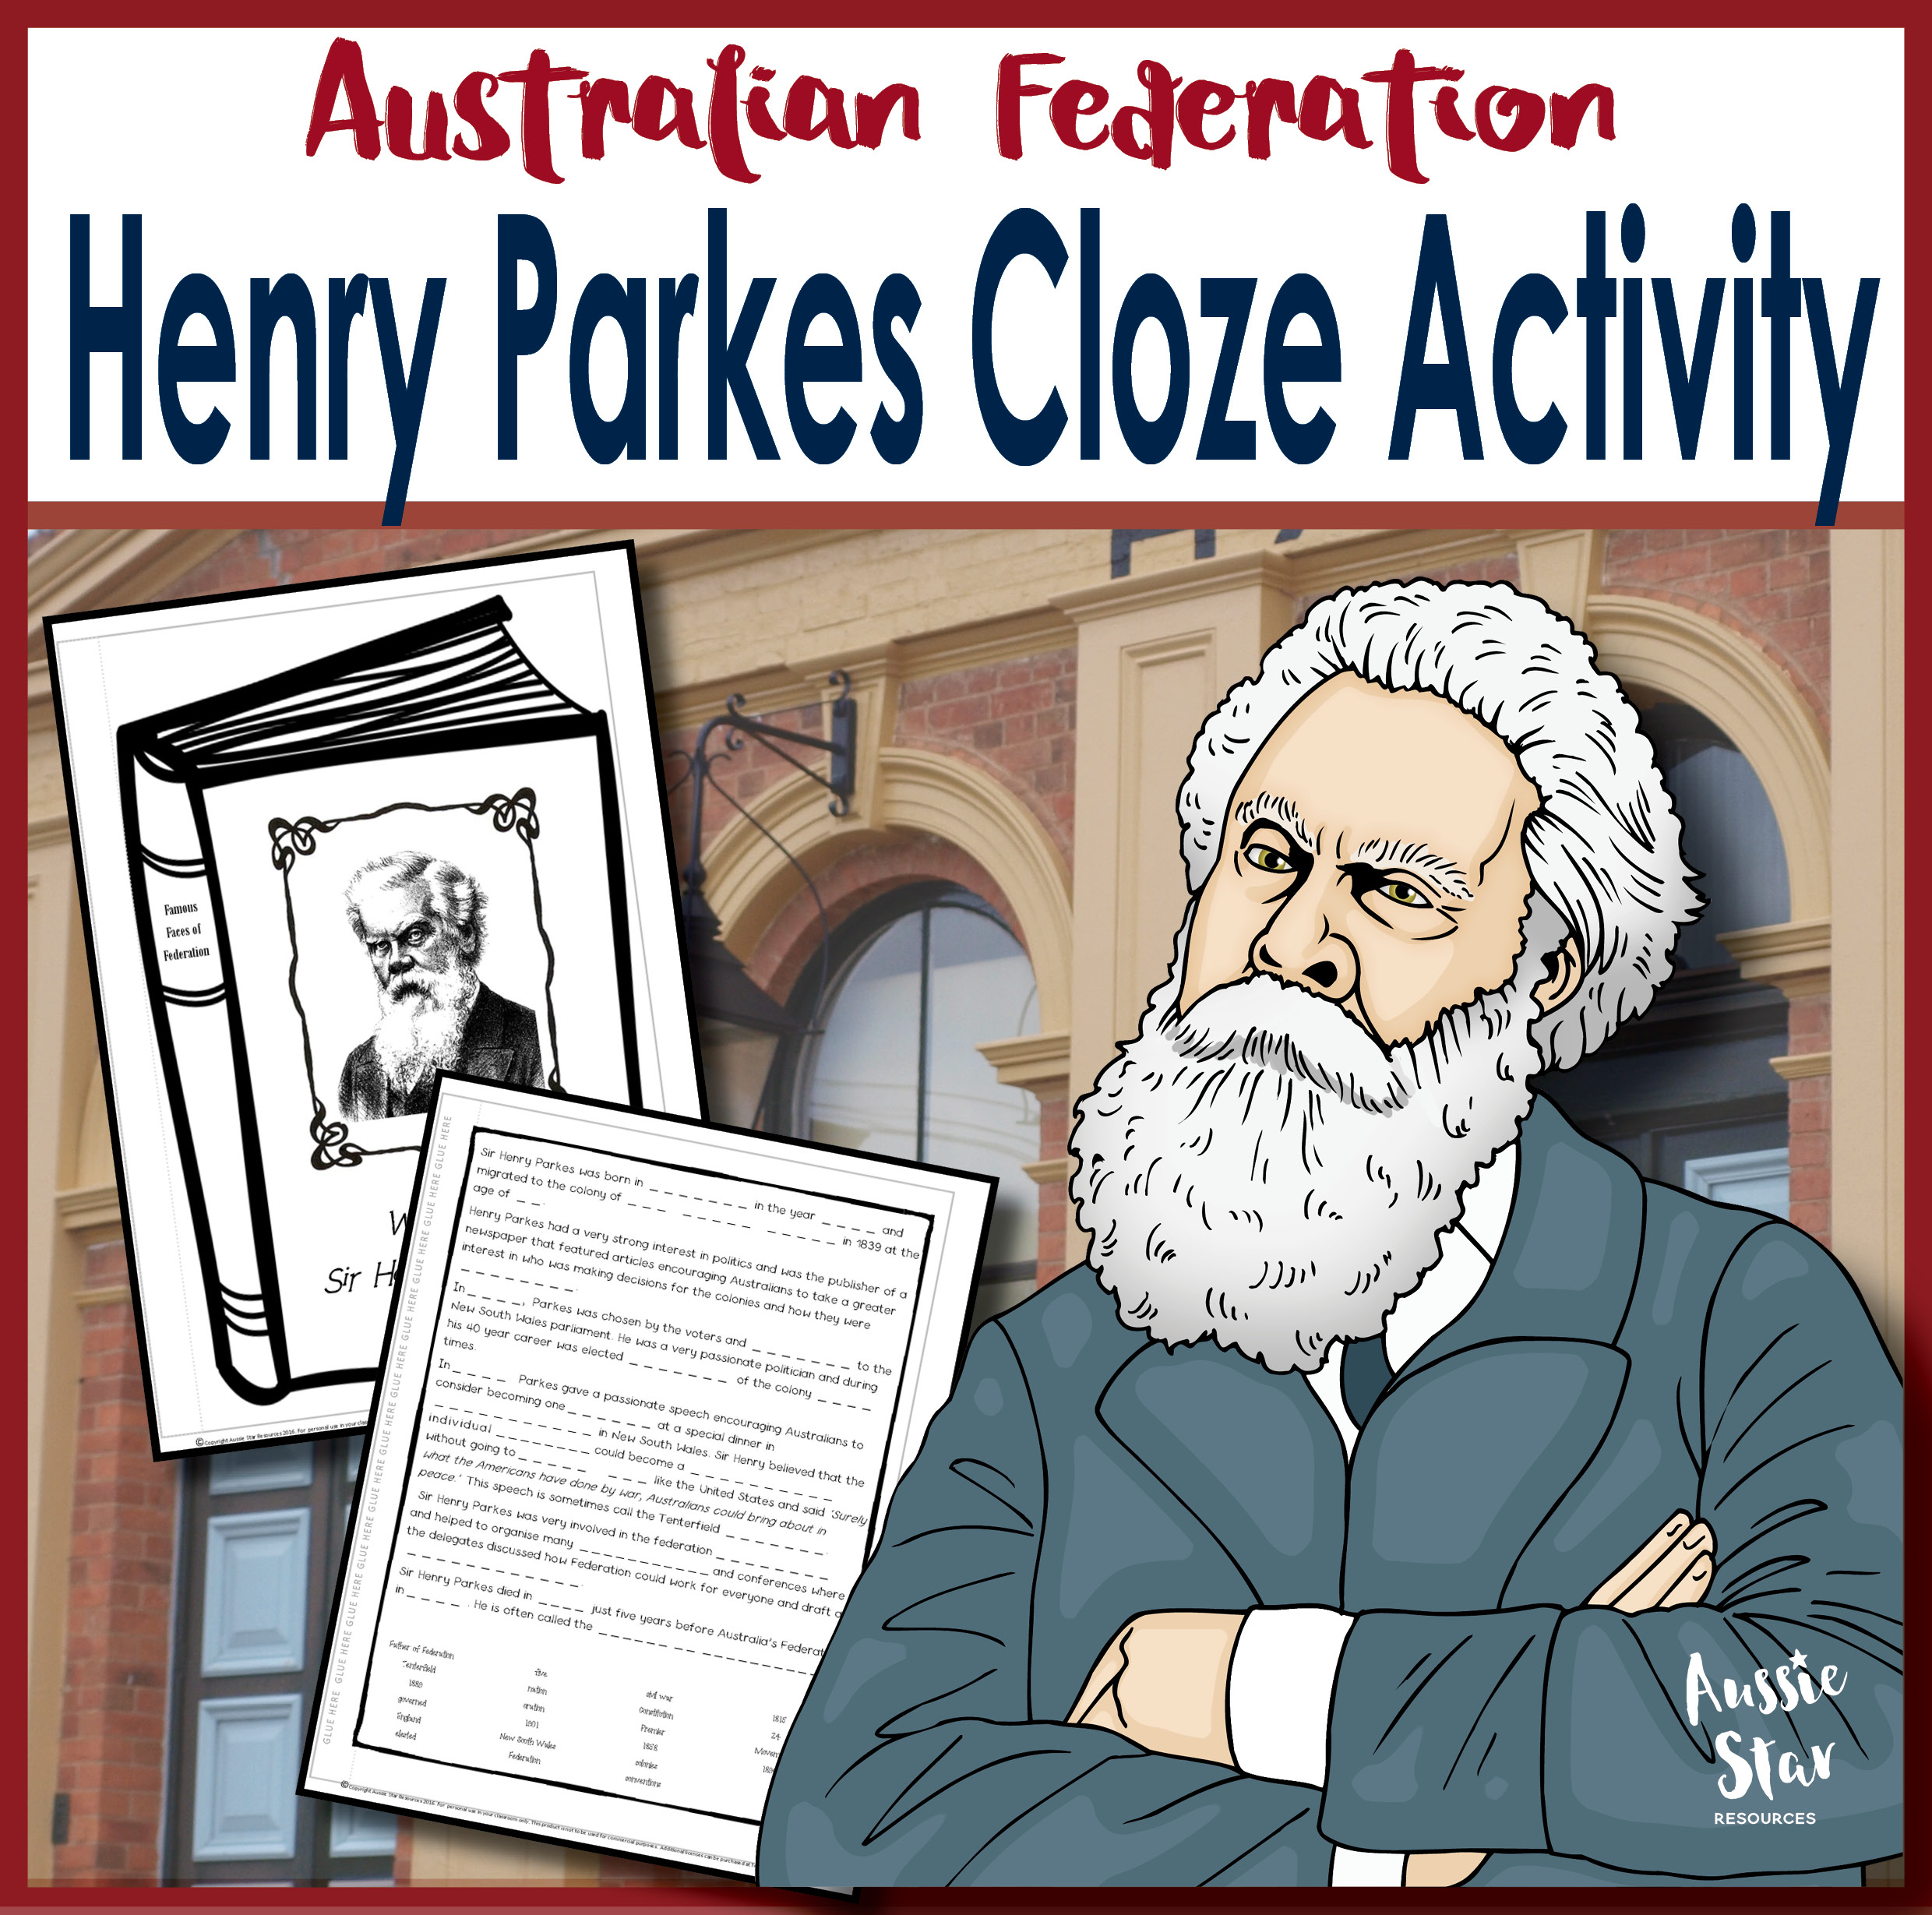 Henry Parkes cloze activity